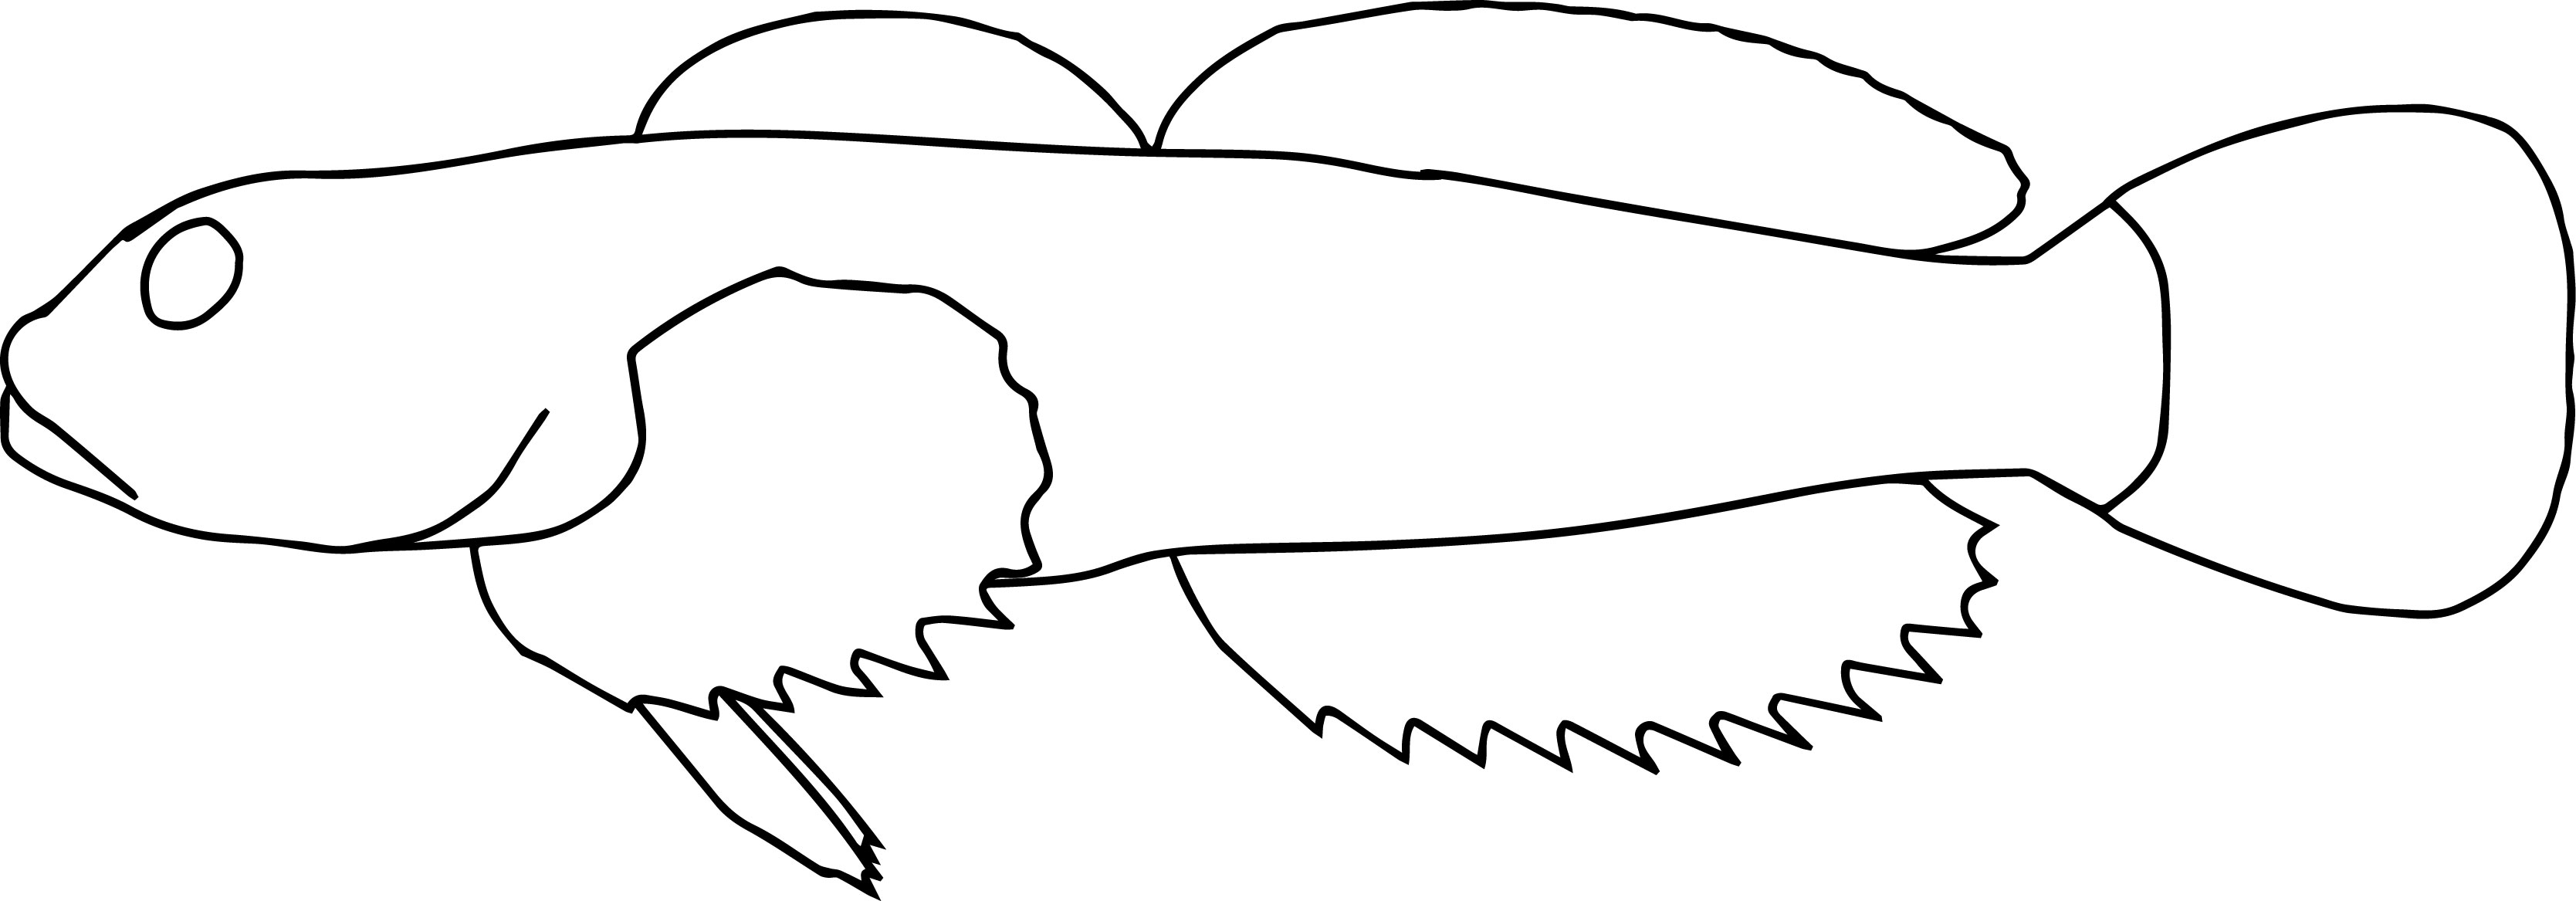 Fish 13 Coloring Page